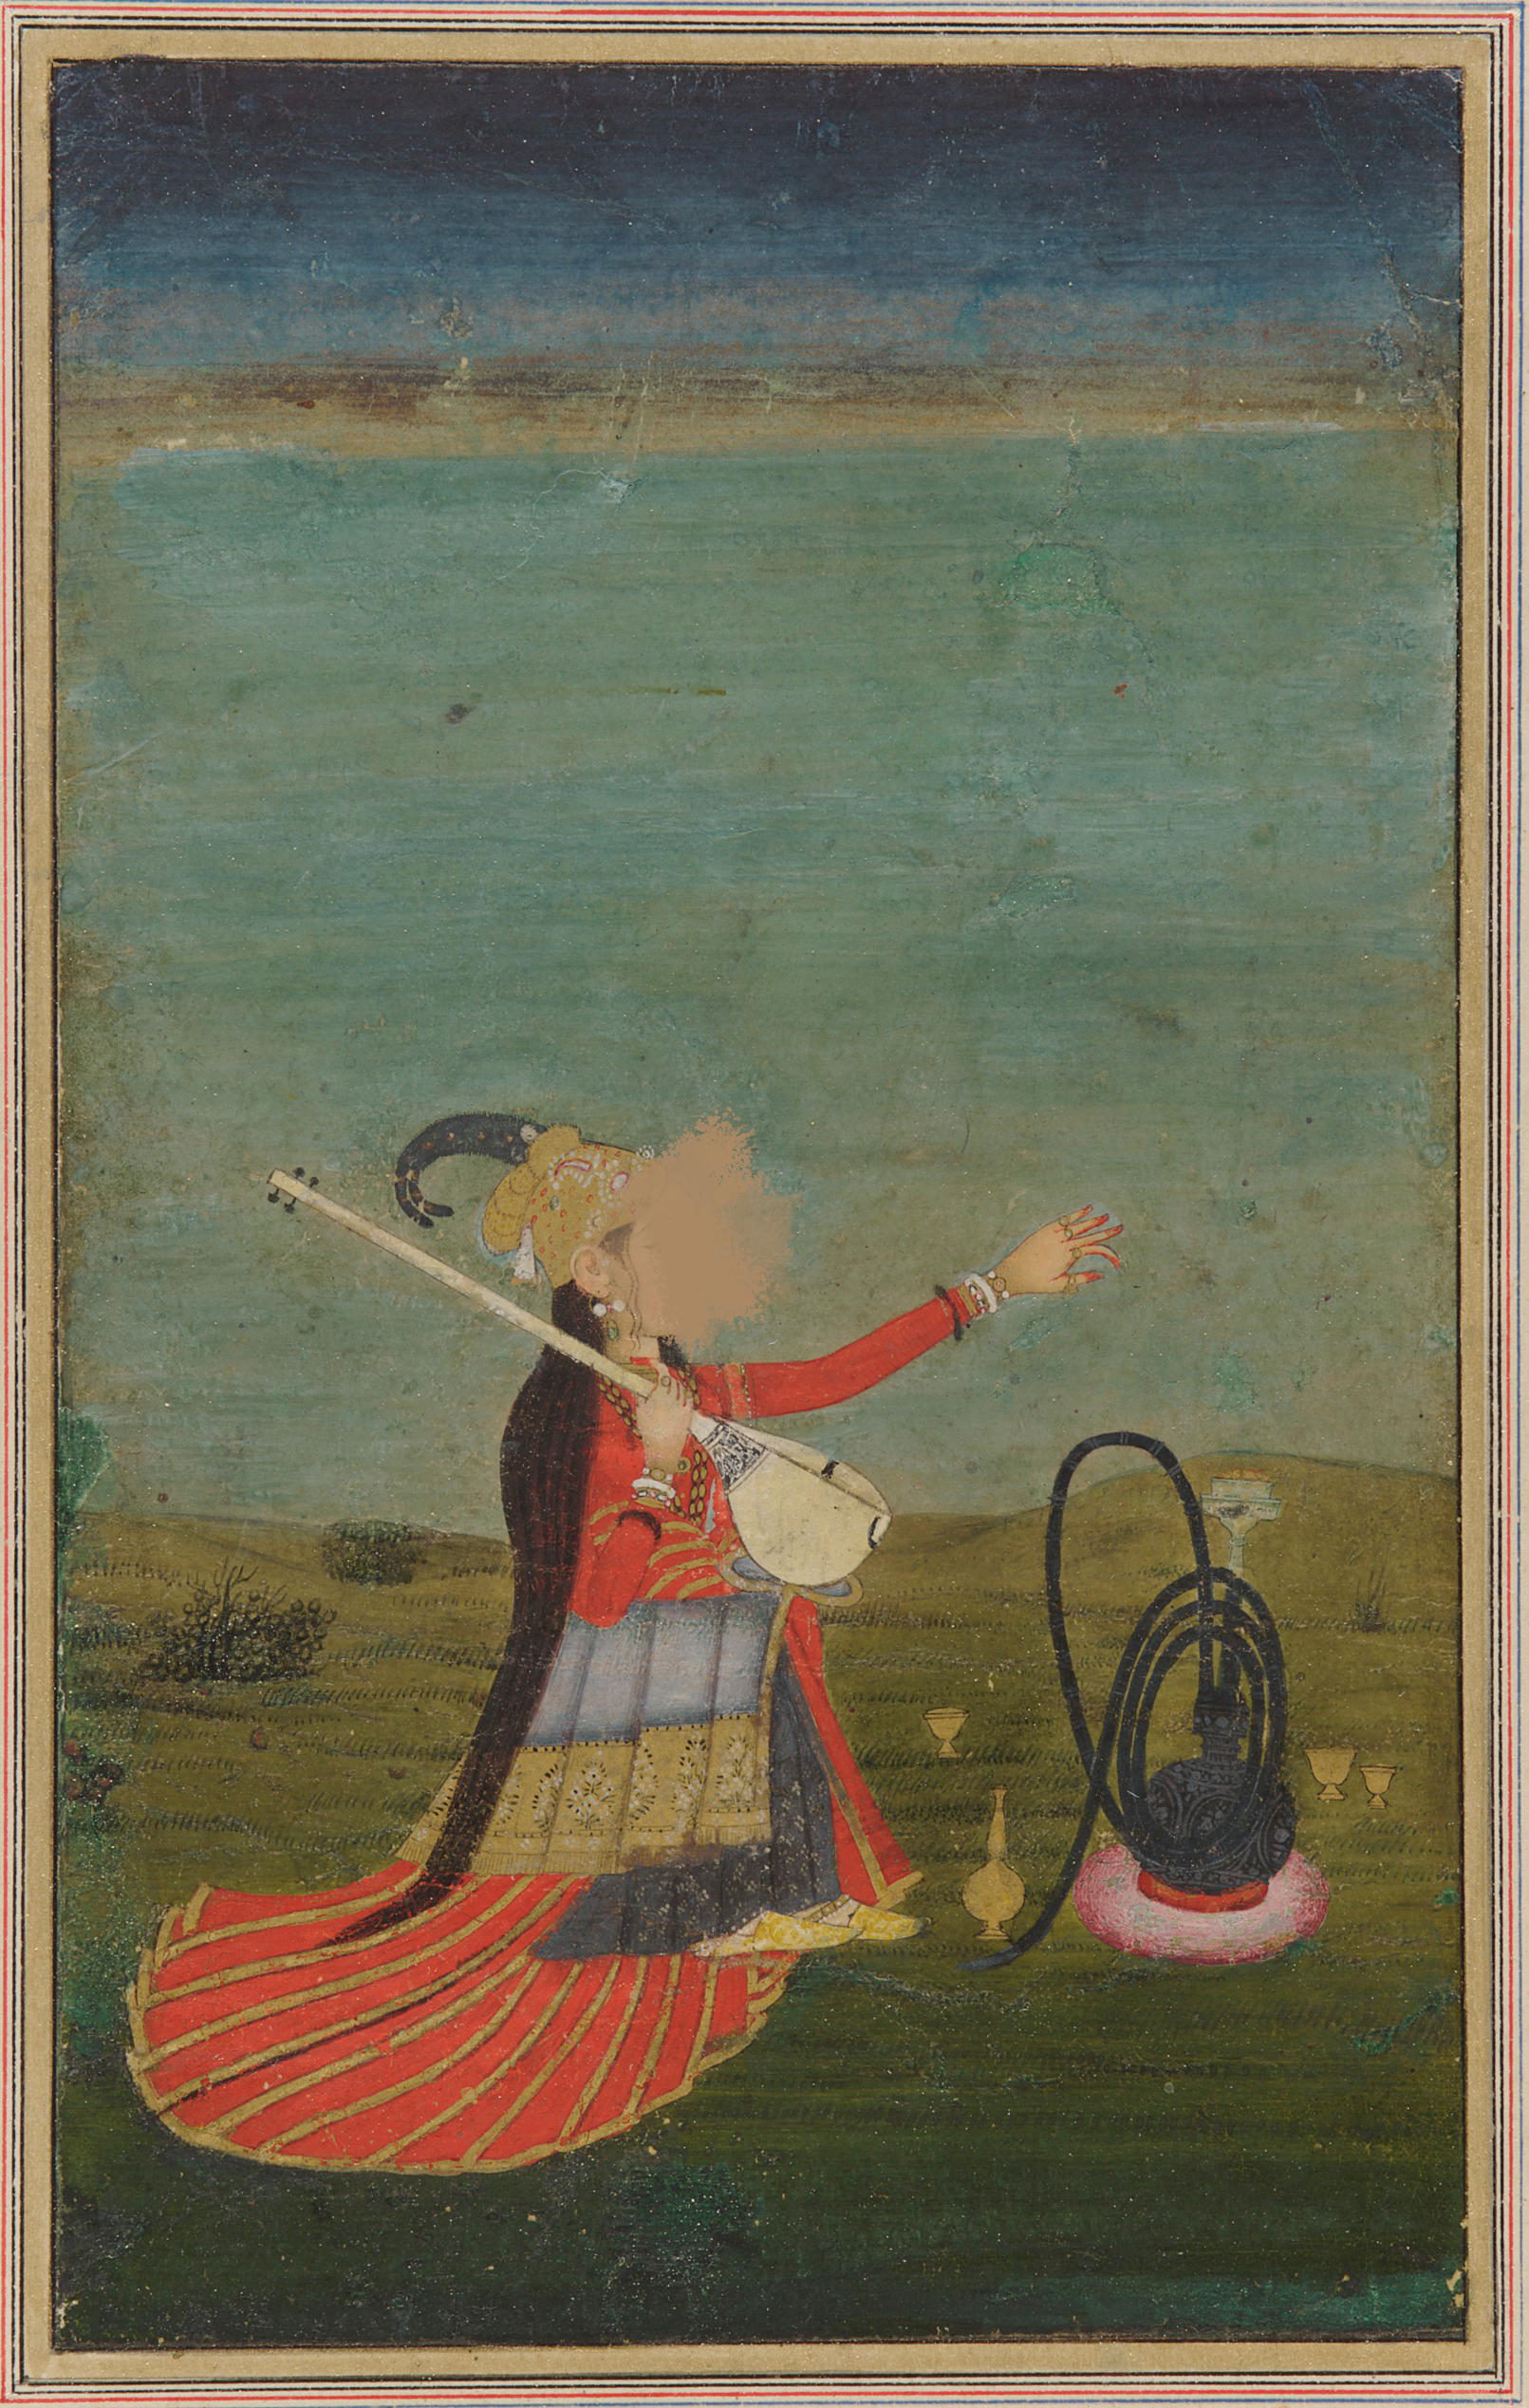 Smithsonian Asian Museum, south Asia collection – Mulher artista with tanpura